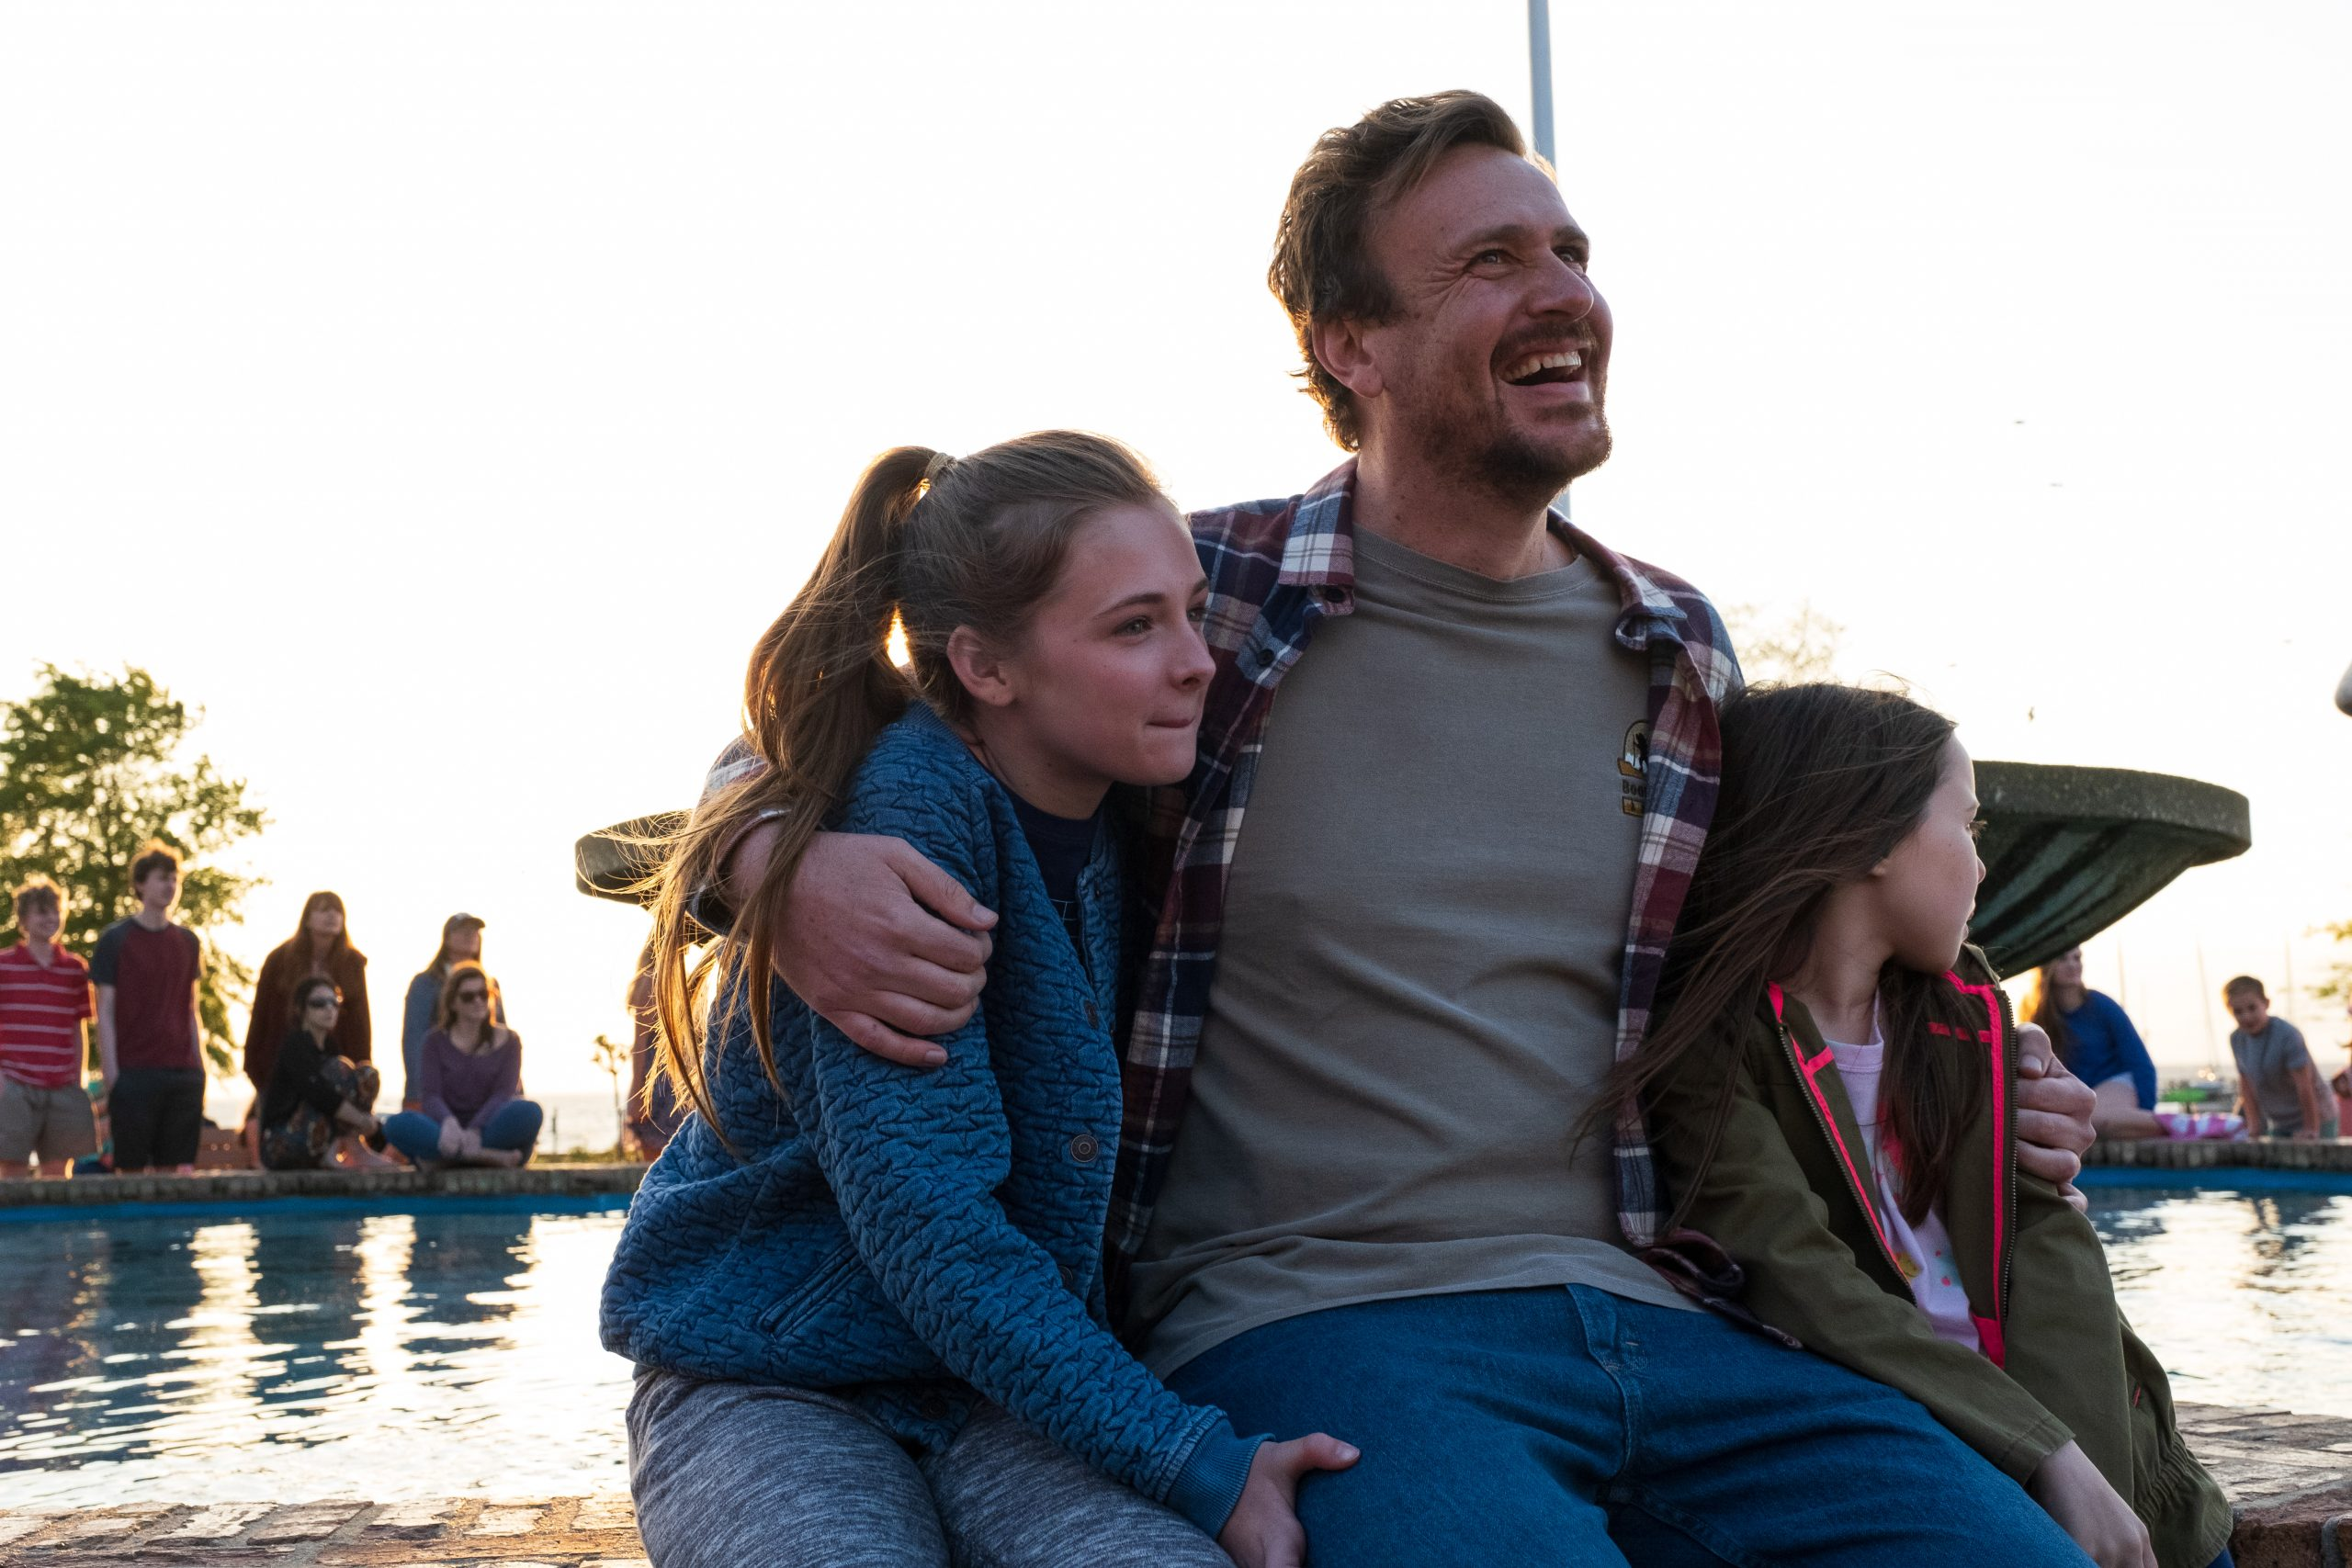 Our Friend Review: Jason Segel Shines in Muddled Tearjerker